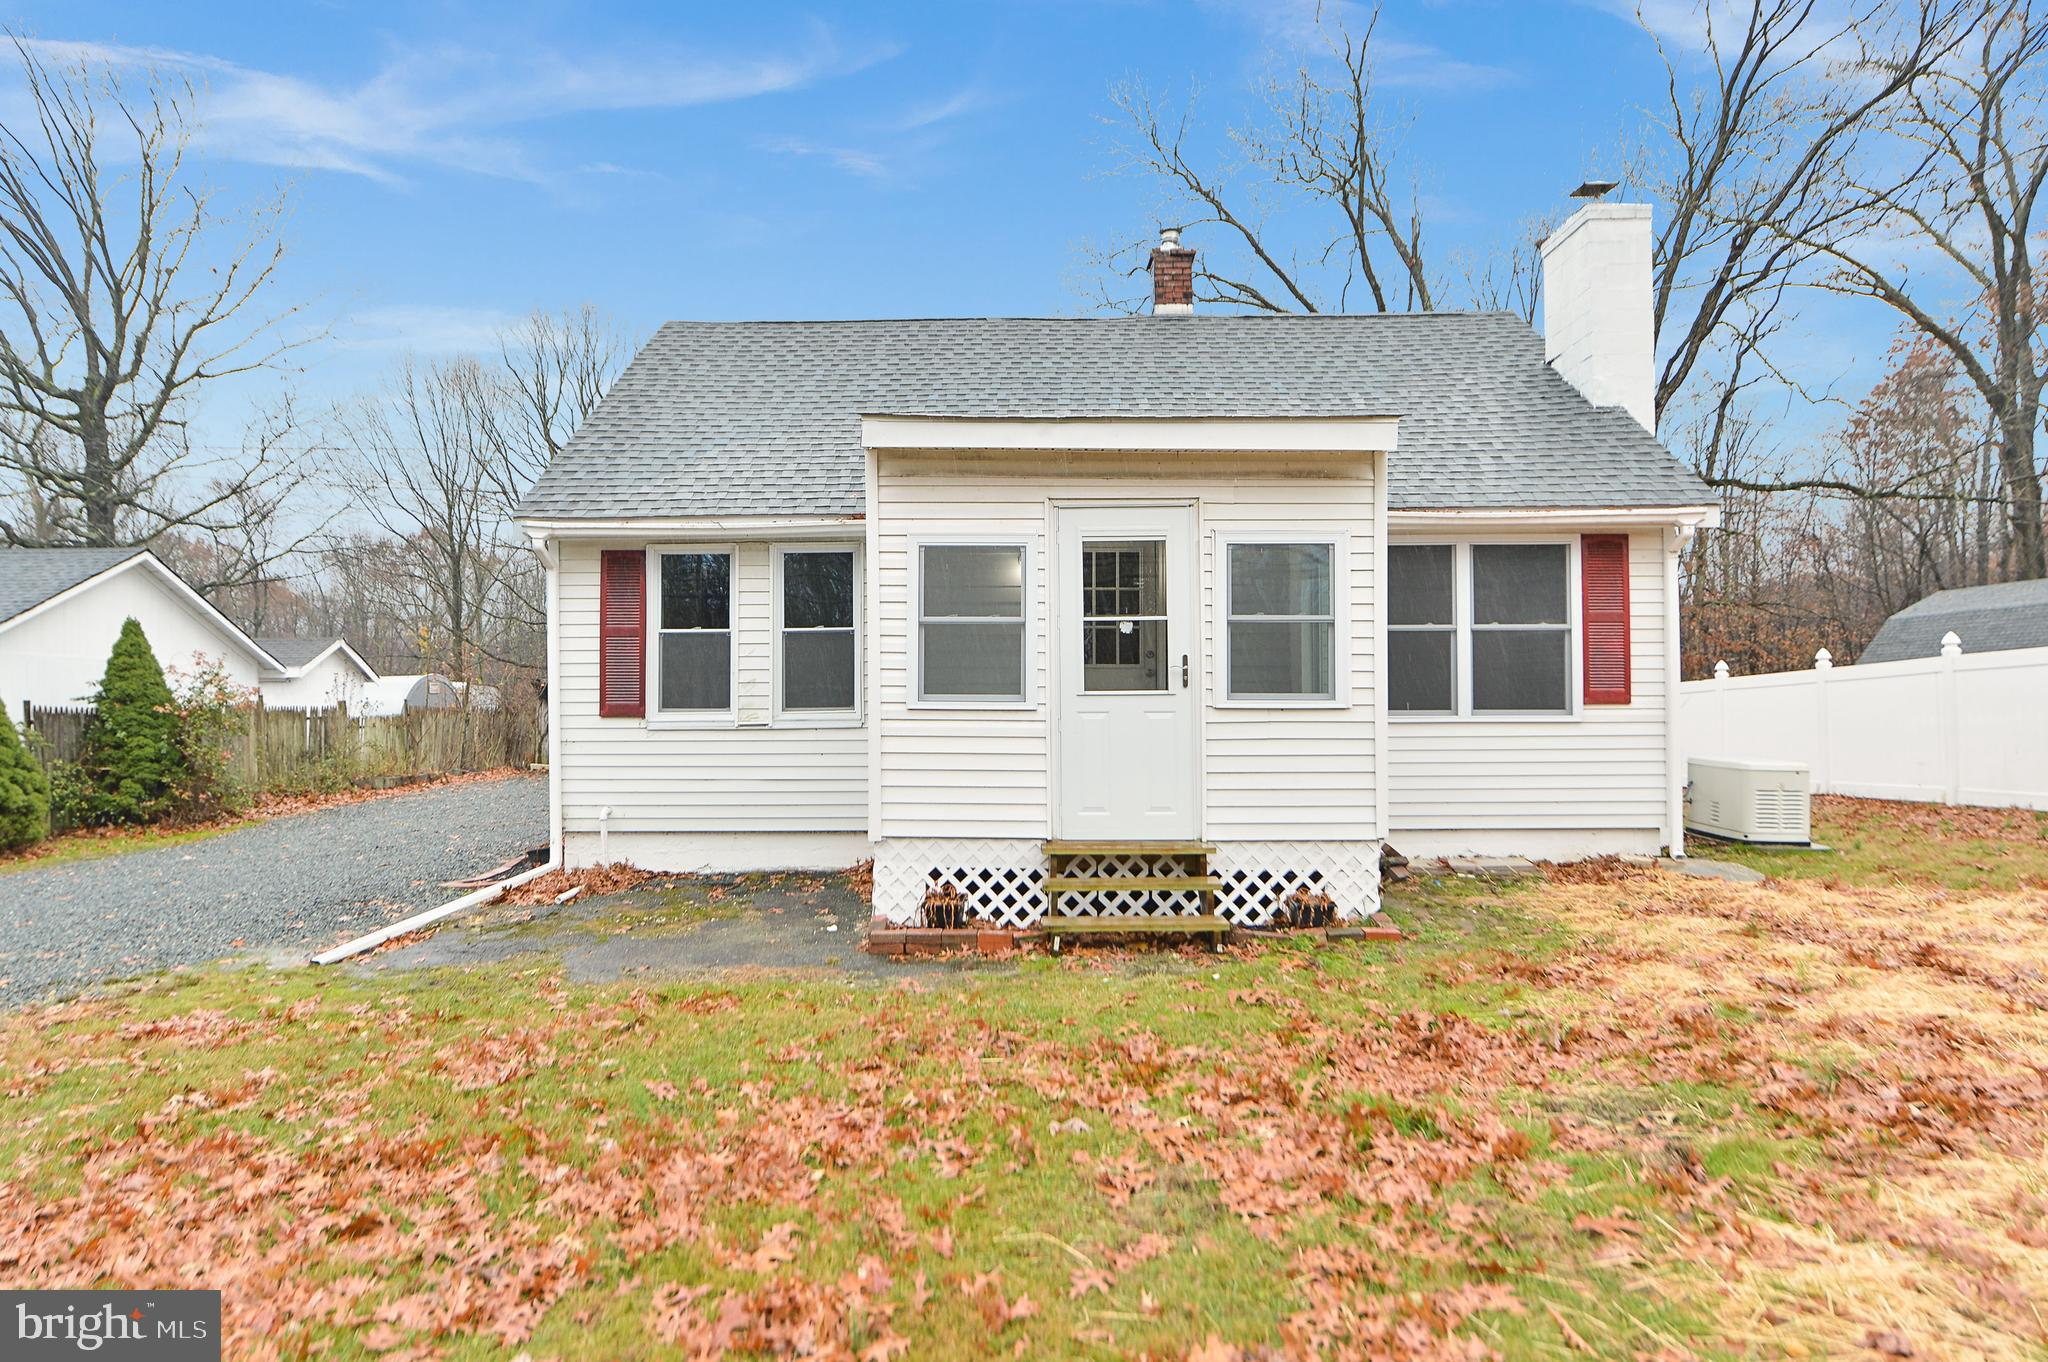 CHARMING 2 BEDROOM, 1 FULL BATH RANCH ON .75 OF AN ACRE.  RECENT RENOVATIONS.  NEW KITCHEN, APPLIANC